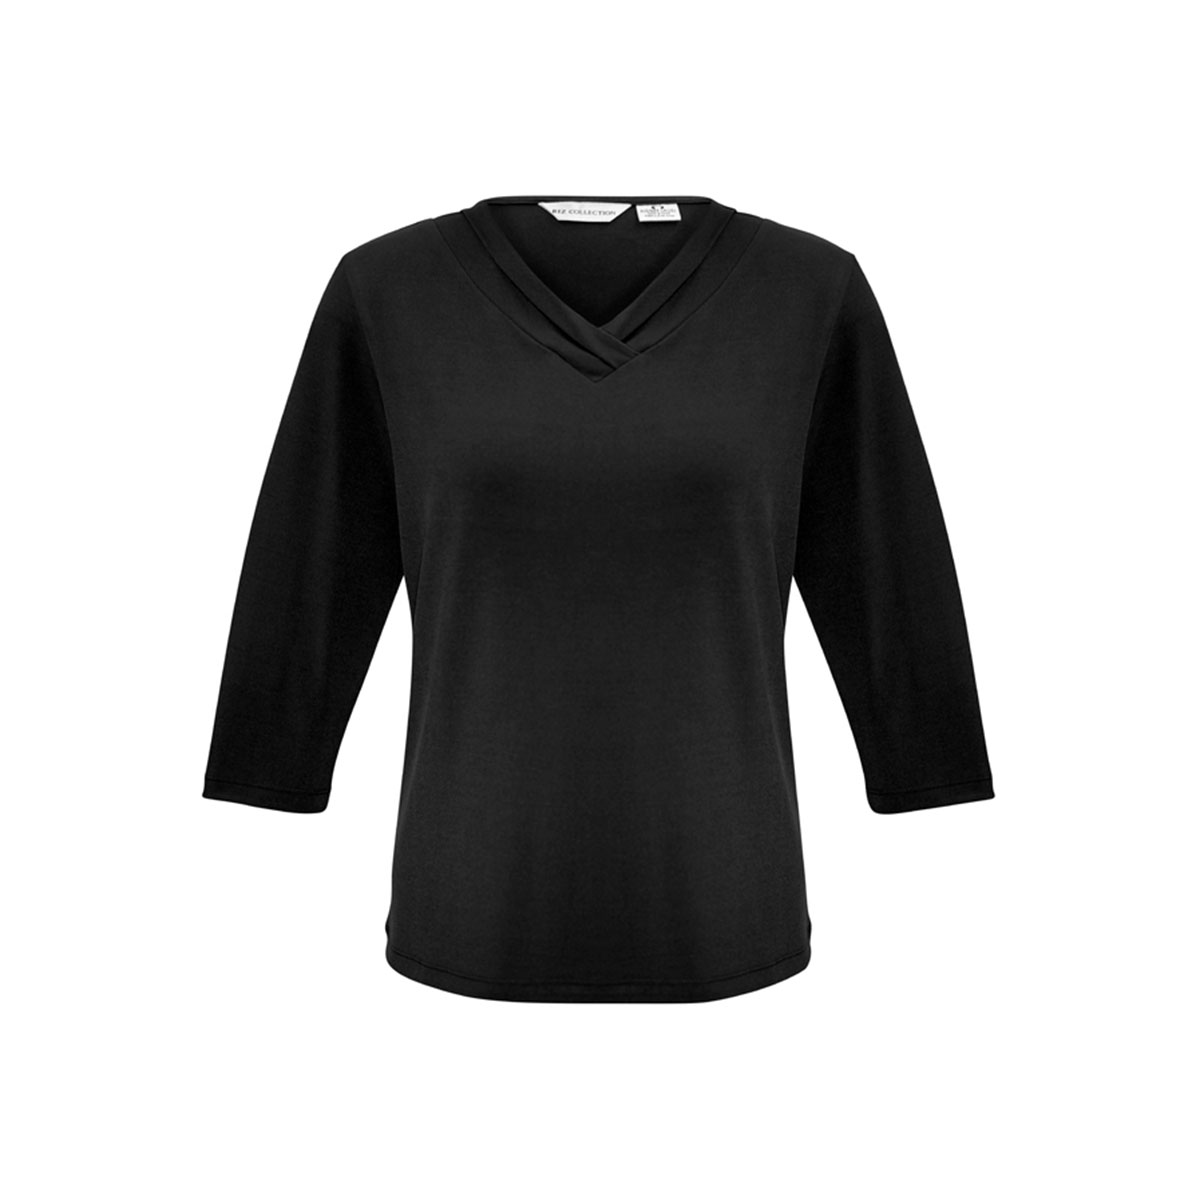 Ladies Lana 3/4 Sleeve Top-Black